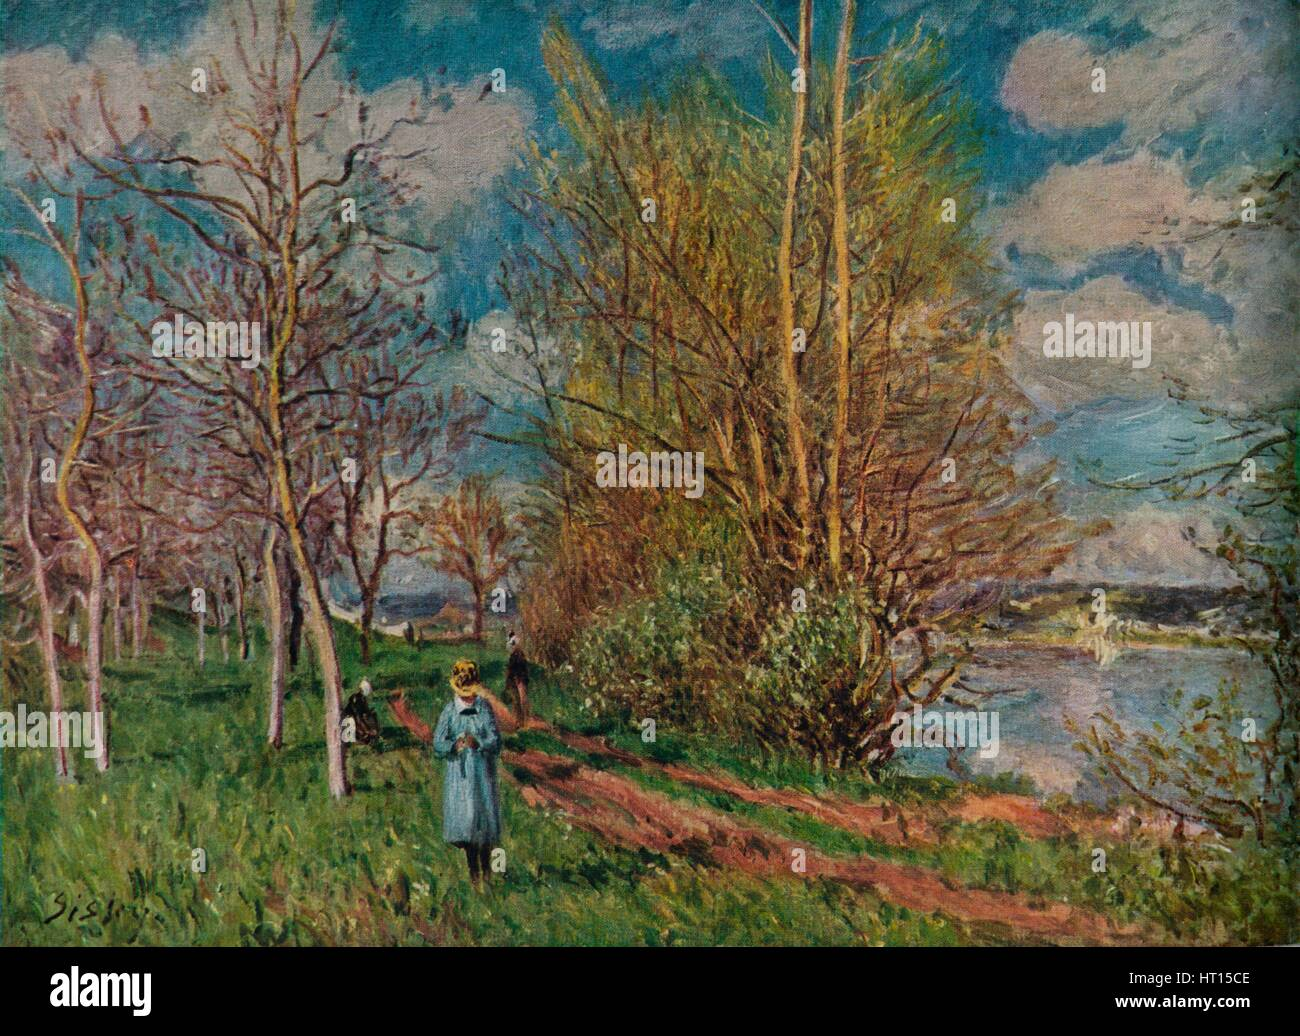 'The Small Meadows in Spring', c1880-1. Artist: Alfred Sisley. - Stock Image